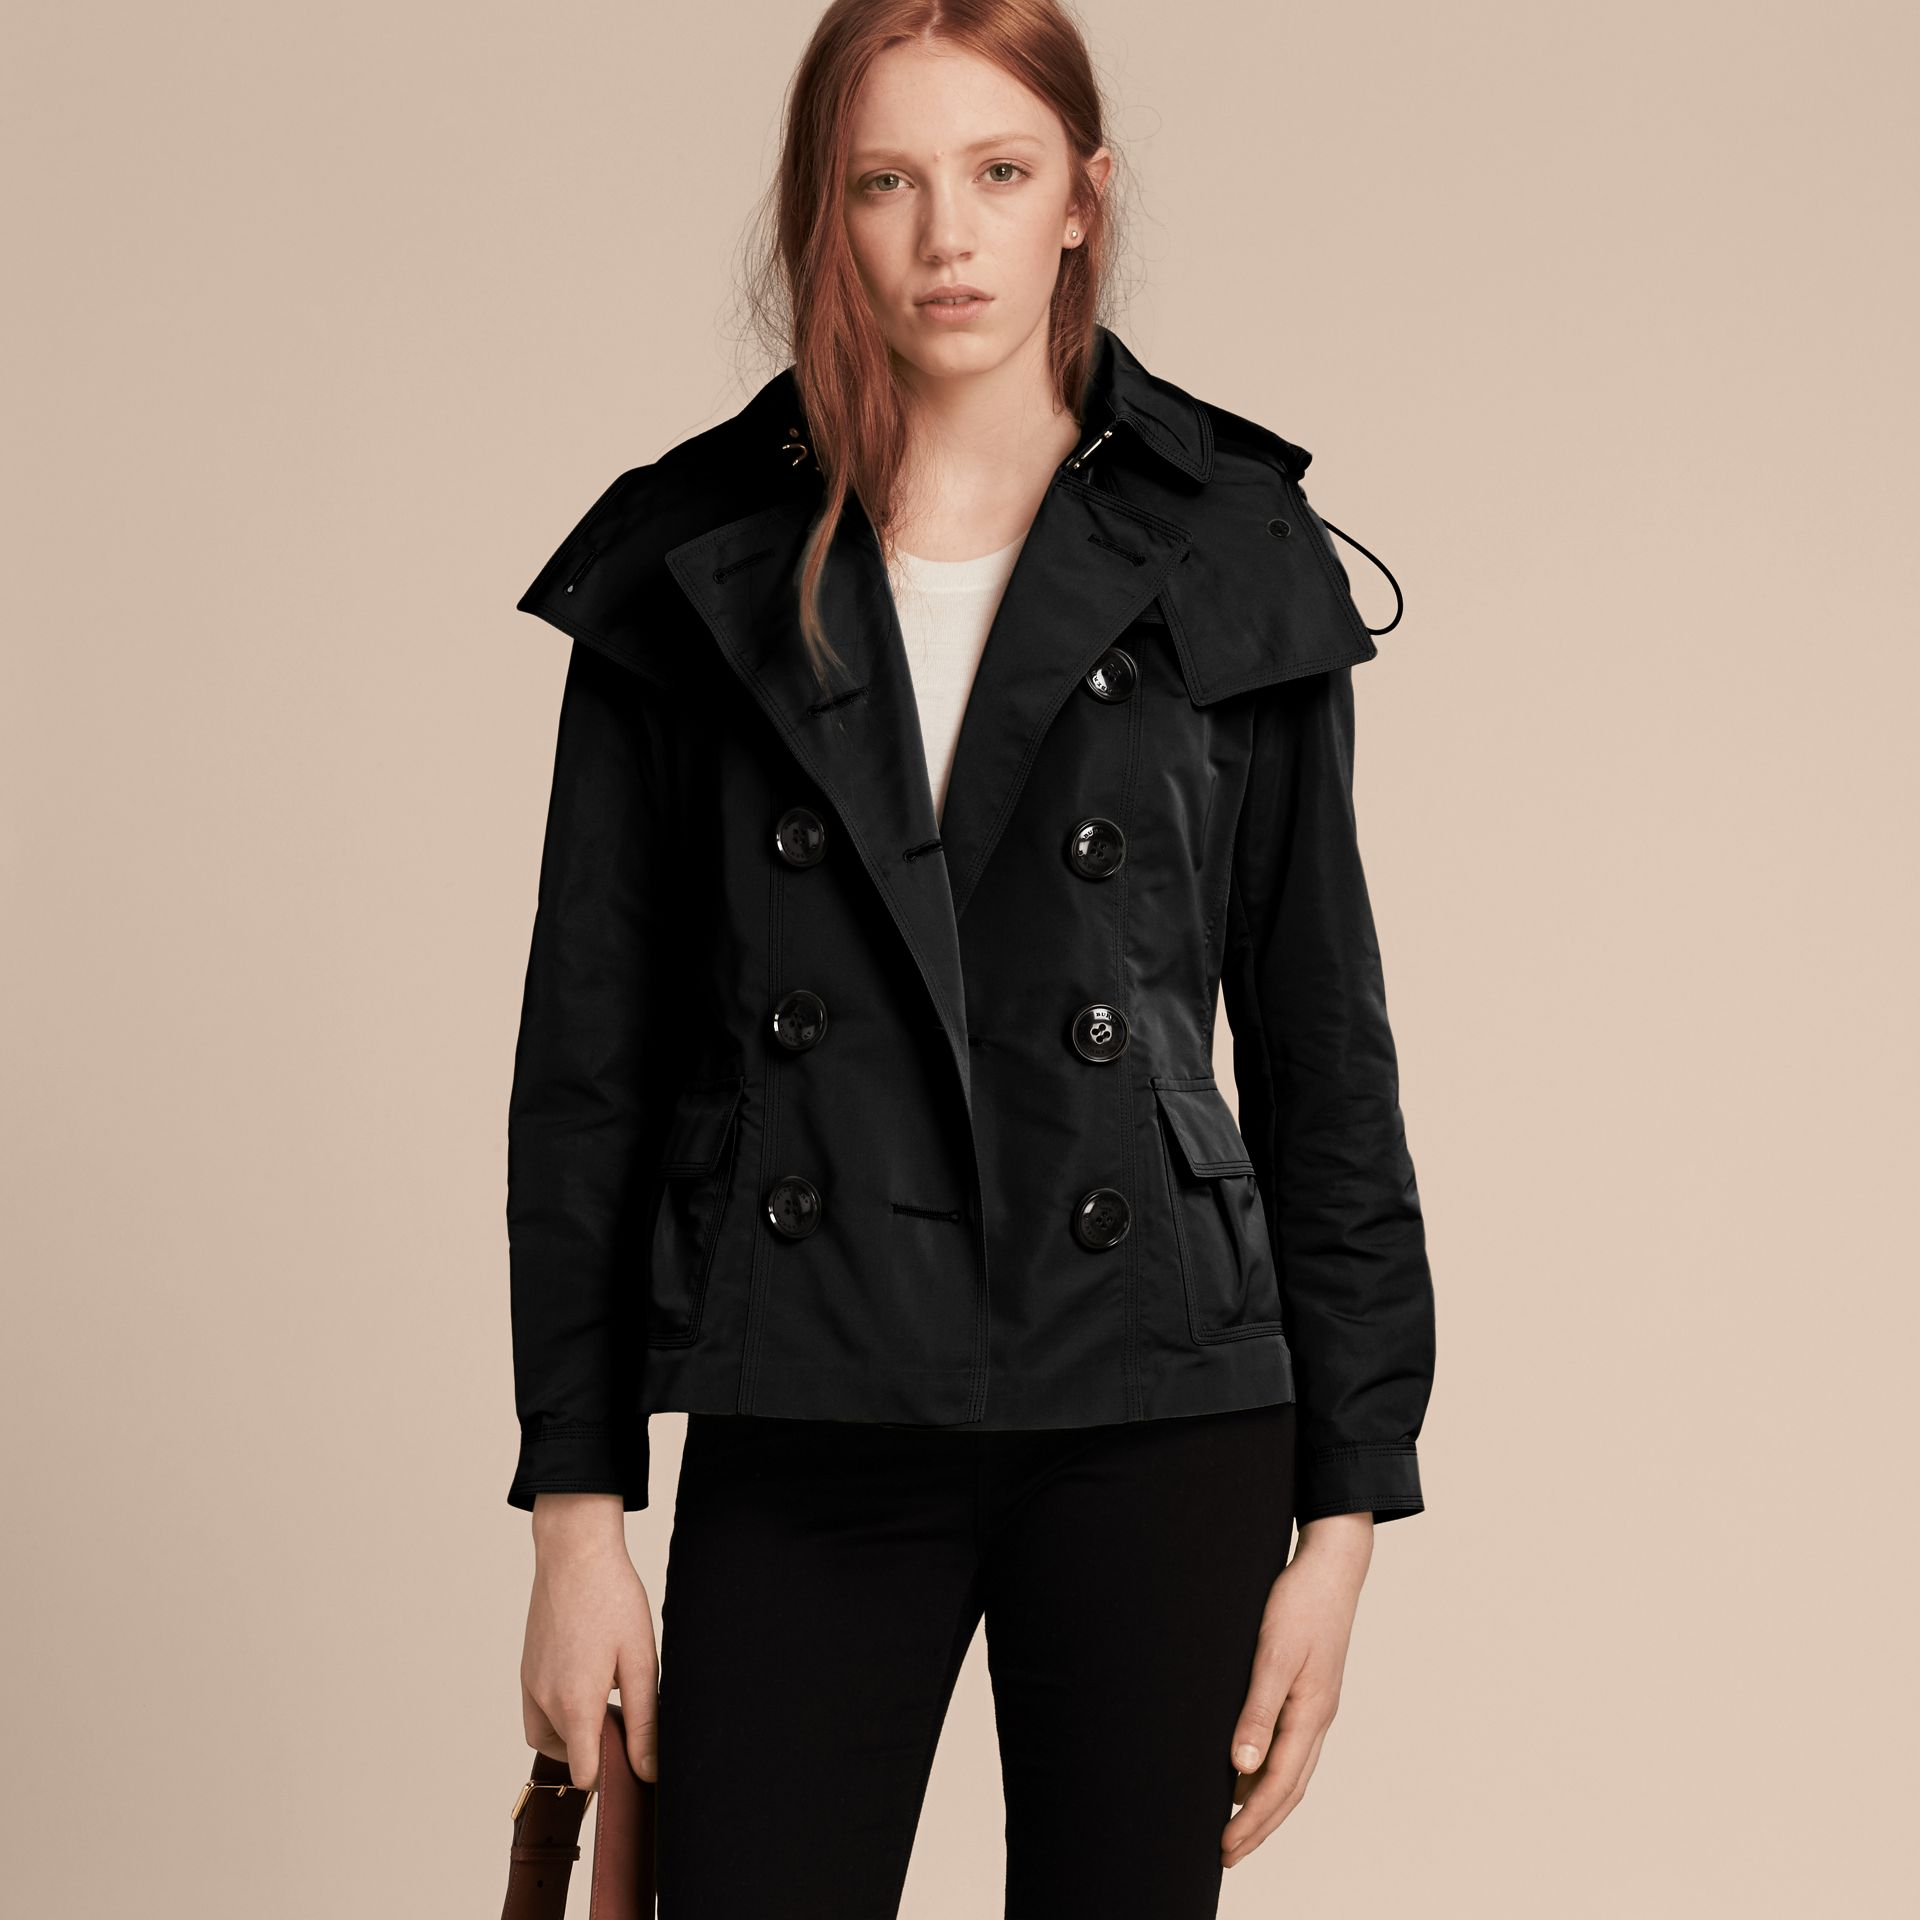 Showerproof Taffeta Trench Jacket with Detachable Hood in Black - gallery image 7